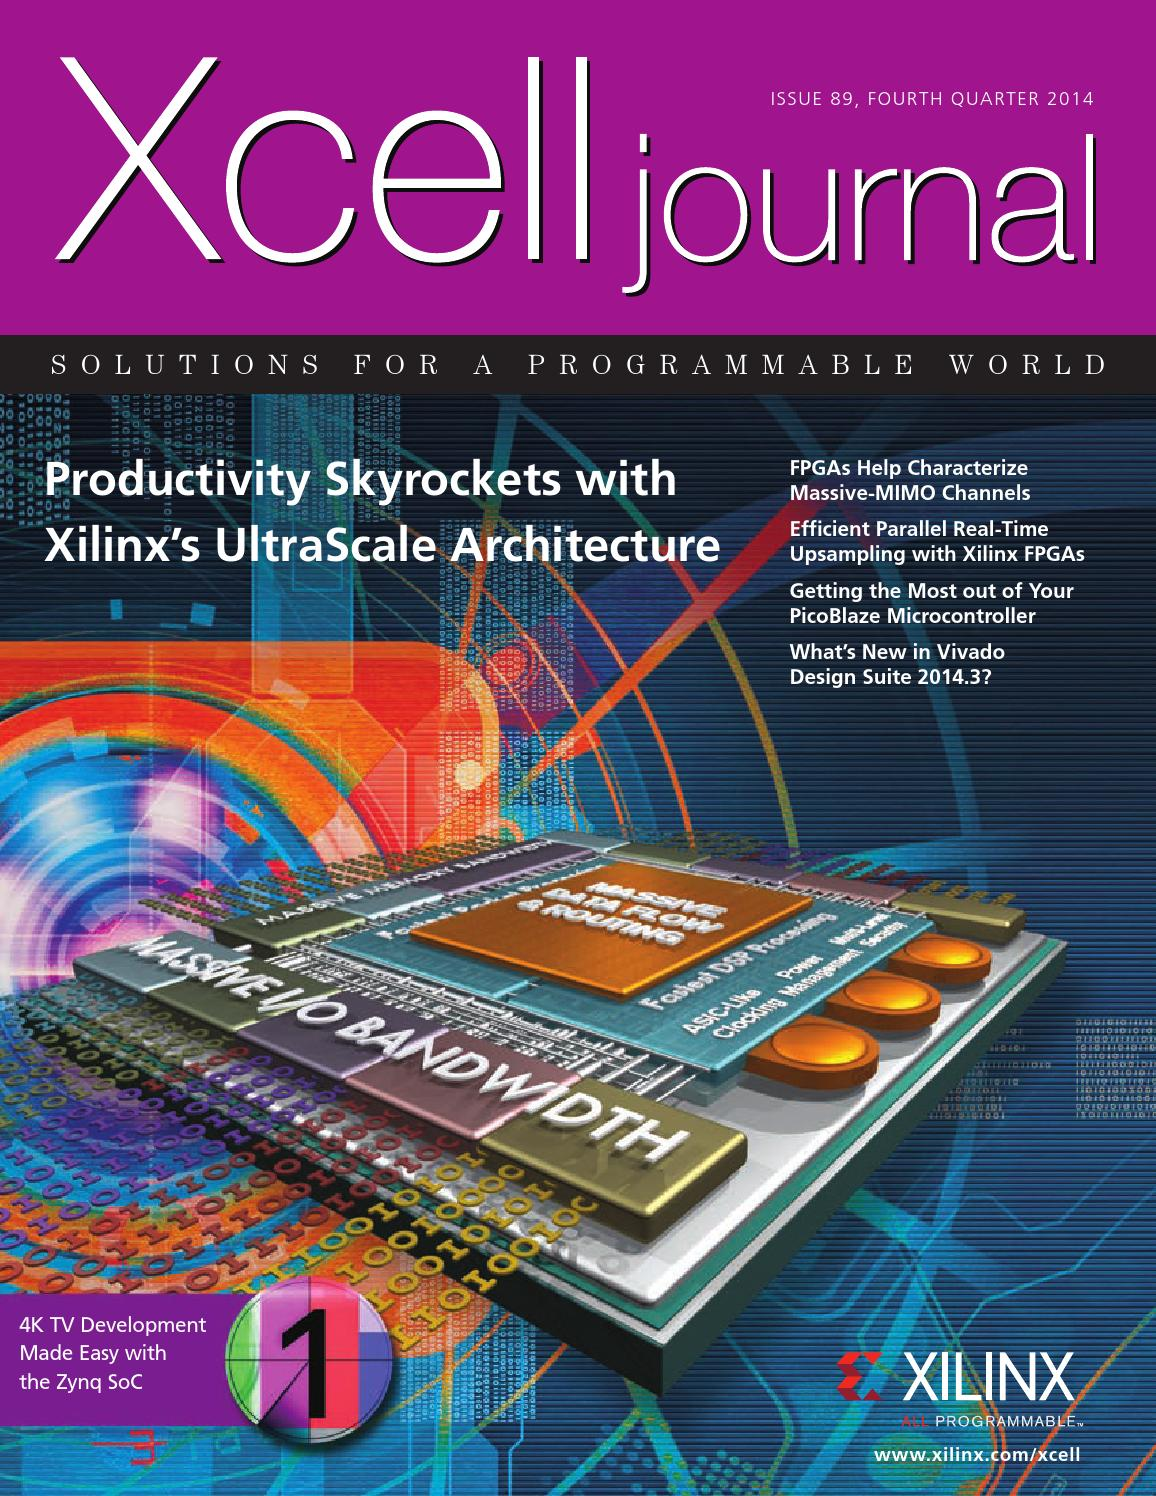 Xcell Journal Issue 89 By Xilinx Publications Issuu Home Gt Products Catalog Multilayer Pcb Gps Printed Circuit Boards